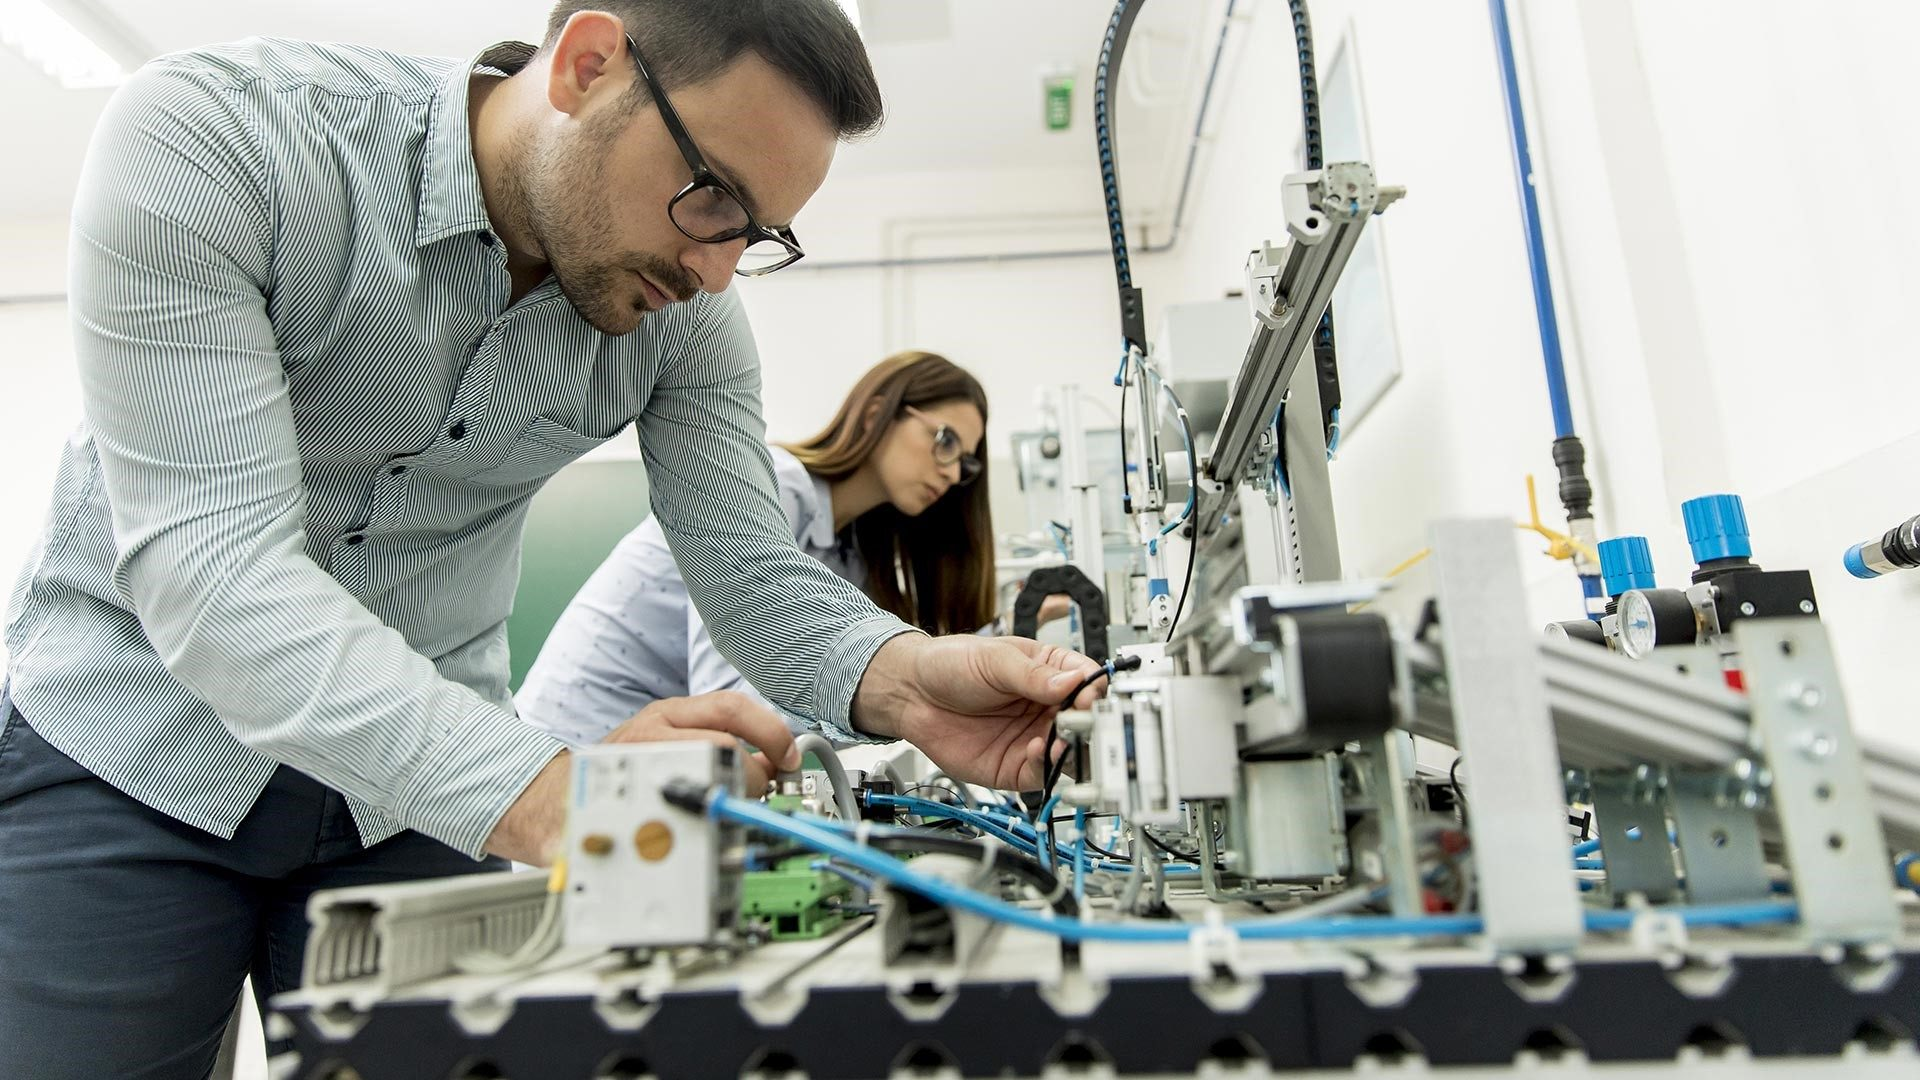 Two scientists working in a robotics lab